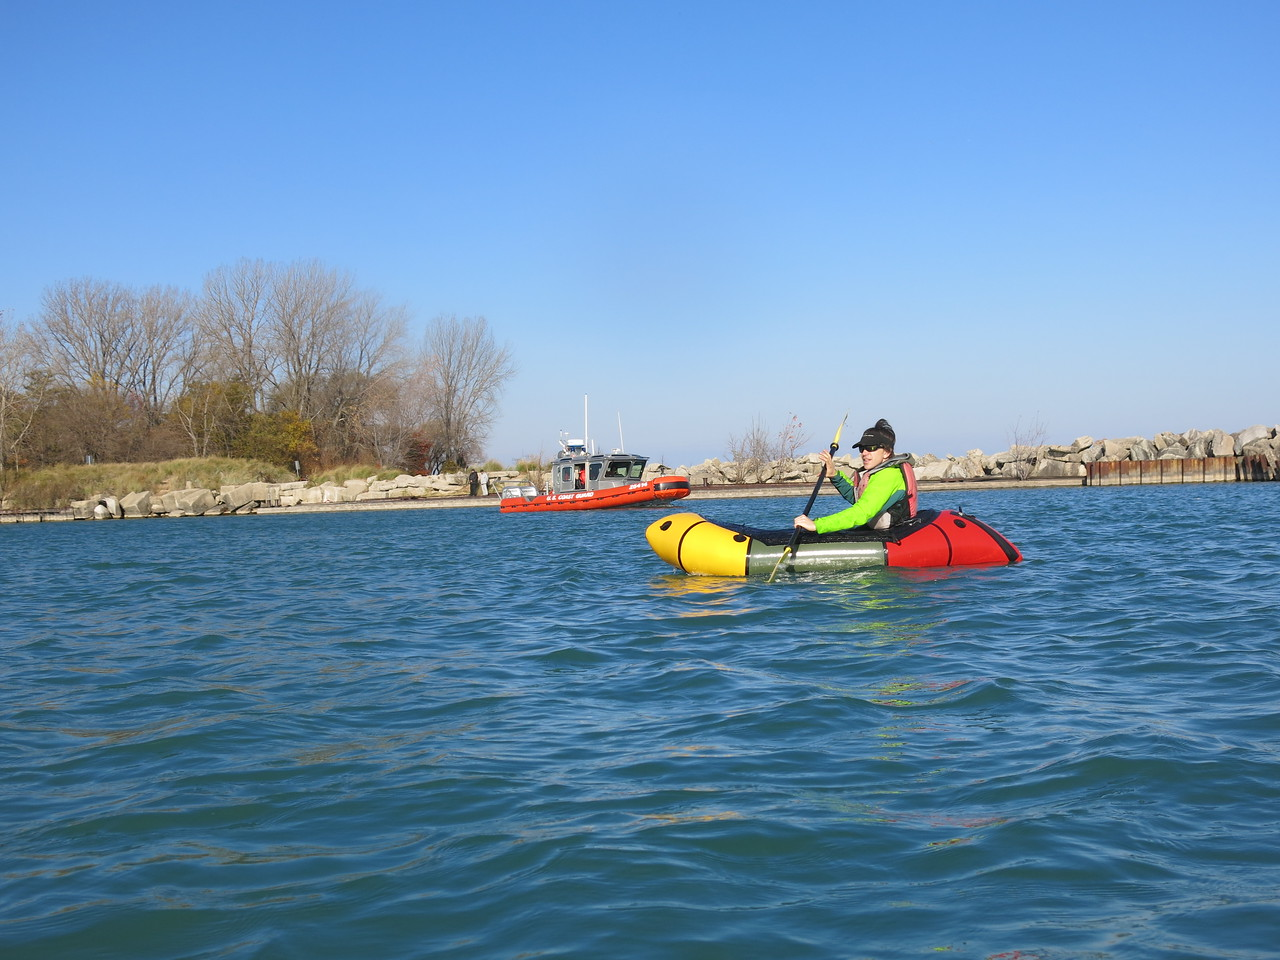 Tomas Ward, winner of 2014 end-of-the year giveaway, paddling around the harbor in Wilmette, IL.